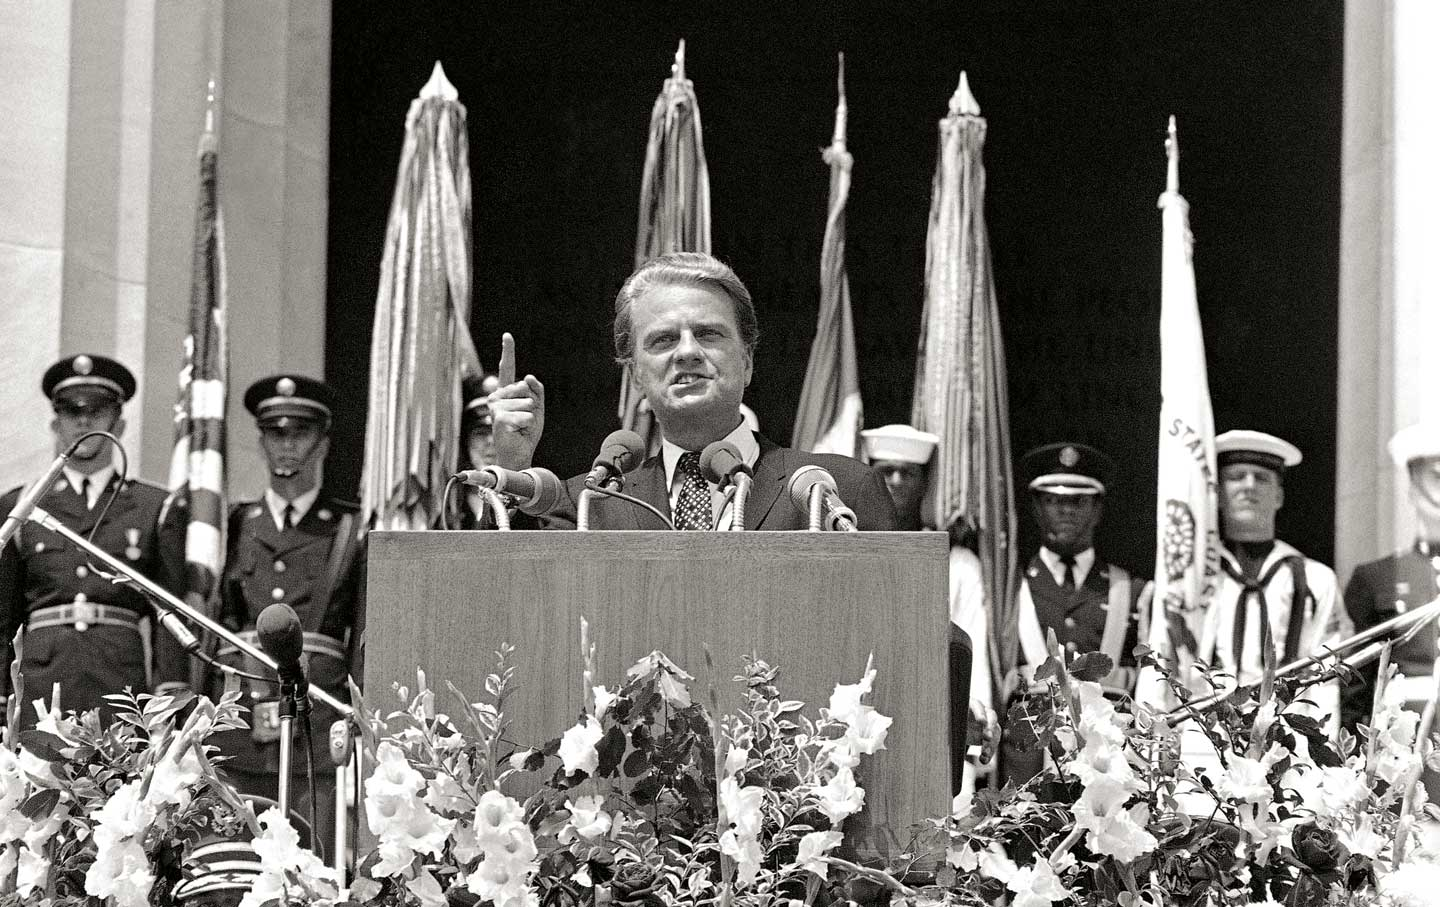 Billy-Graham-speaks-from-the-steps-of-the-Lincoln-Memorial-on-Honor-America-Day-July-4-1970